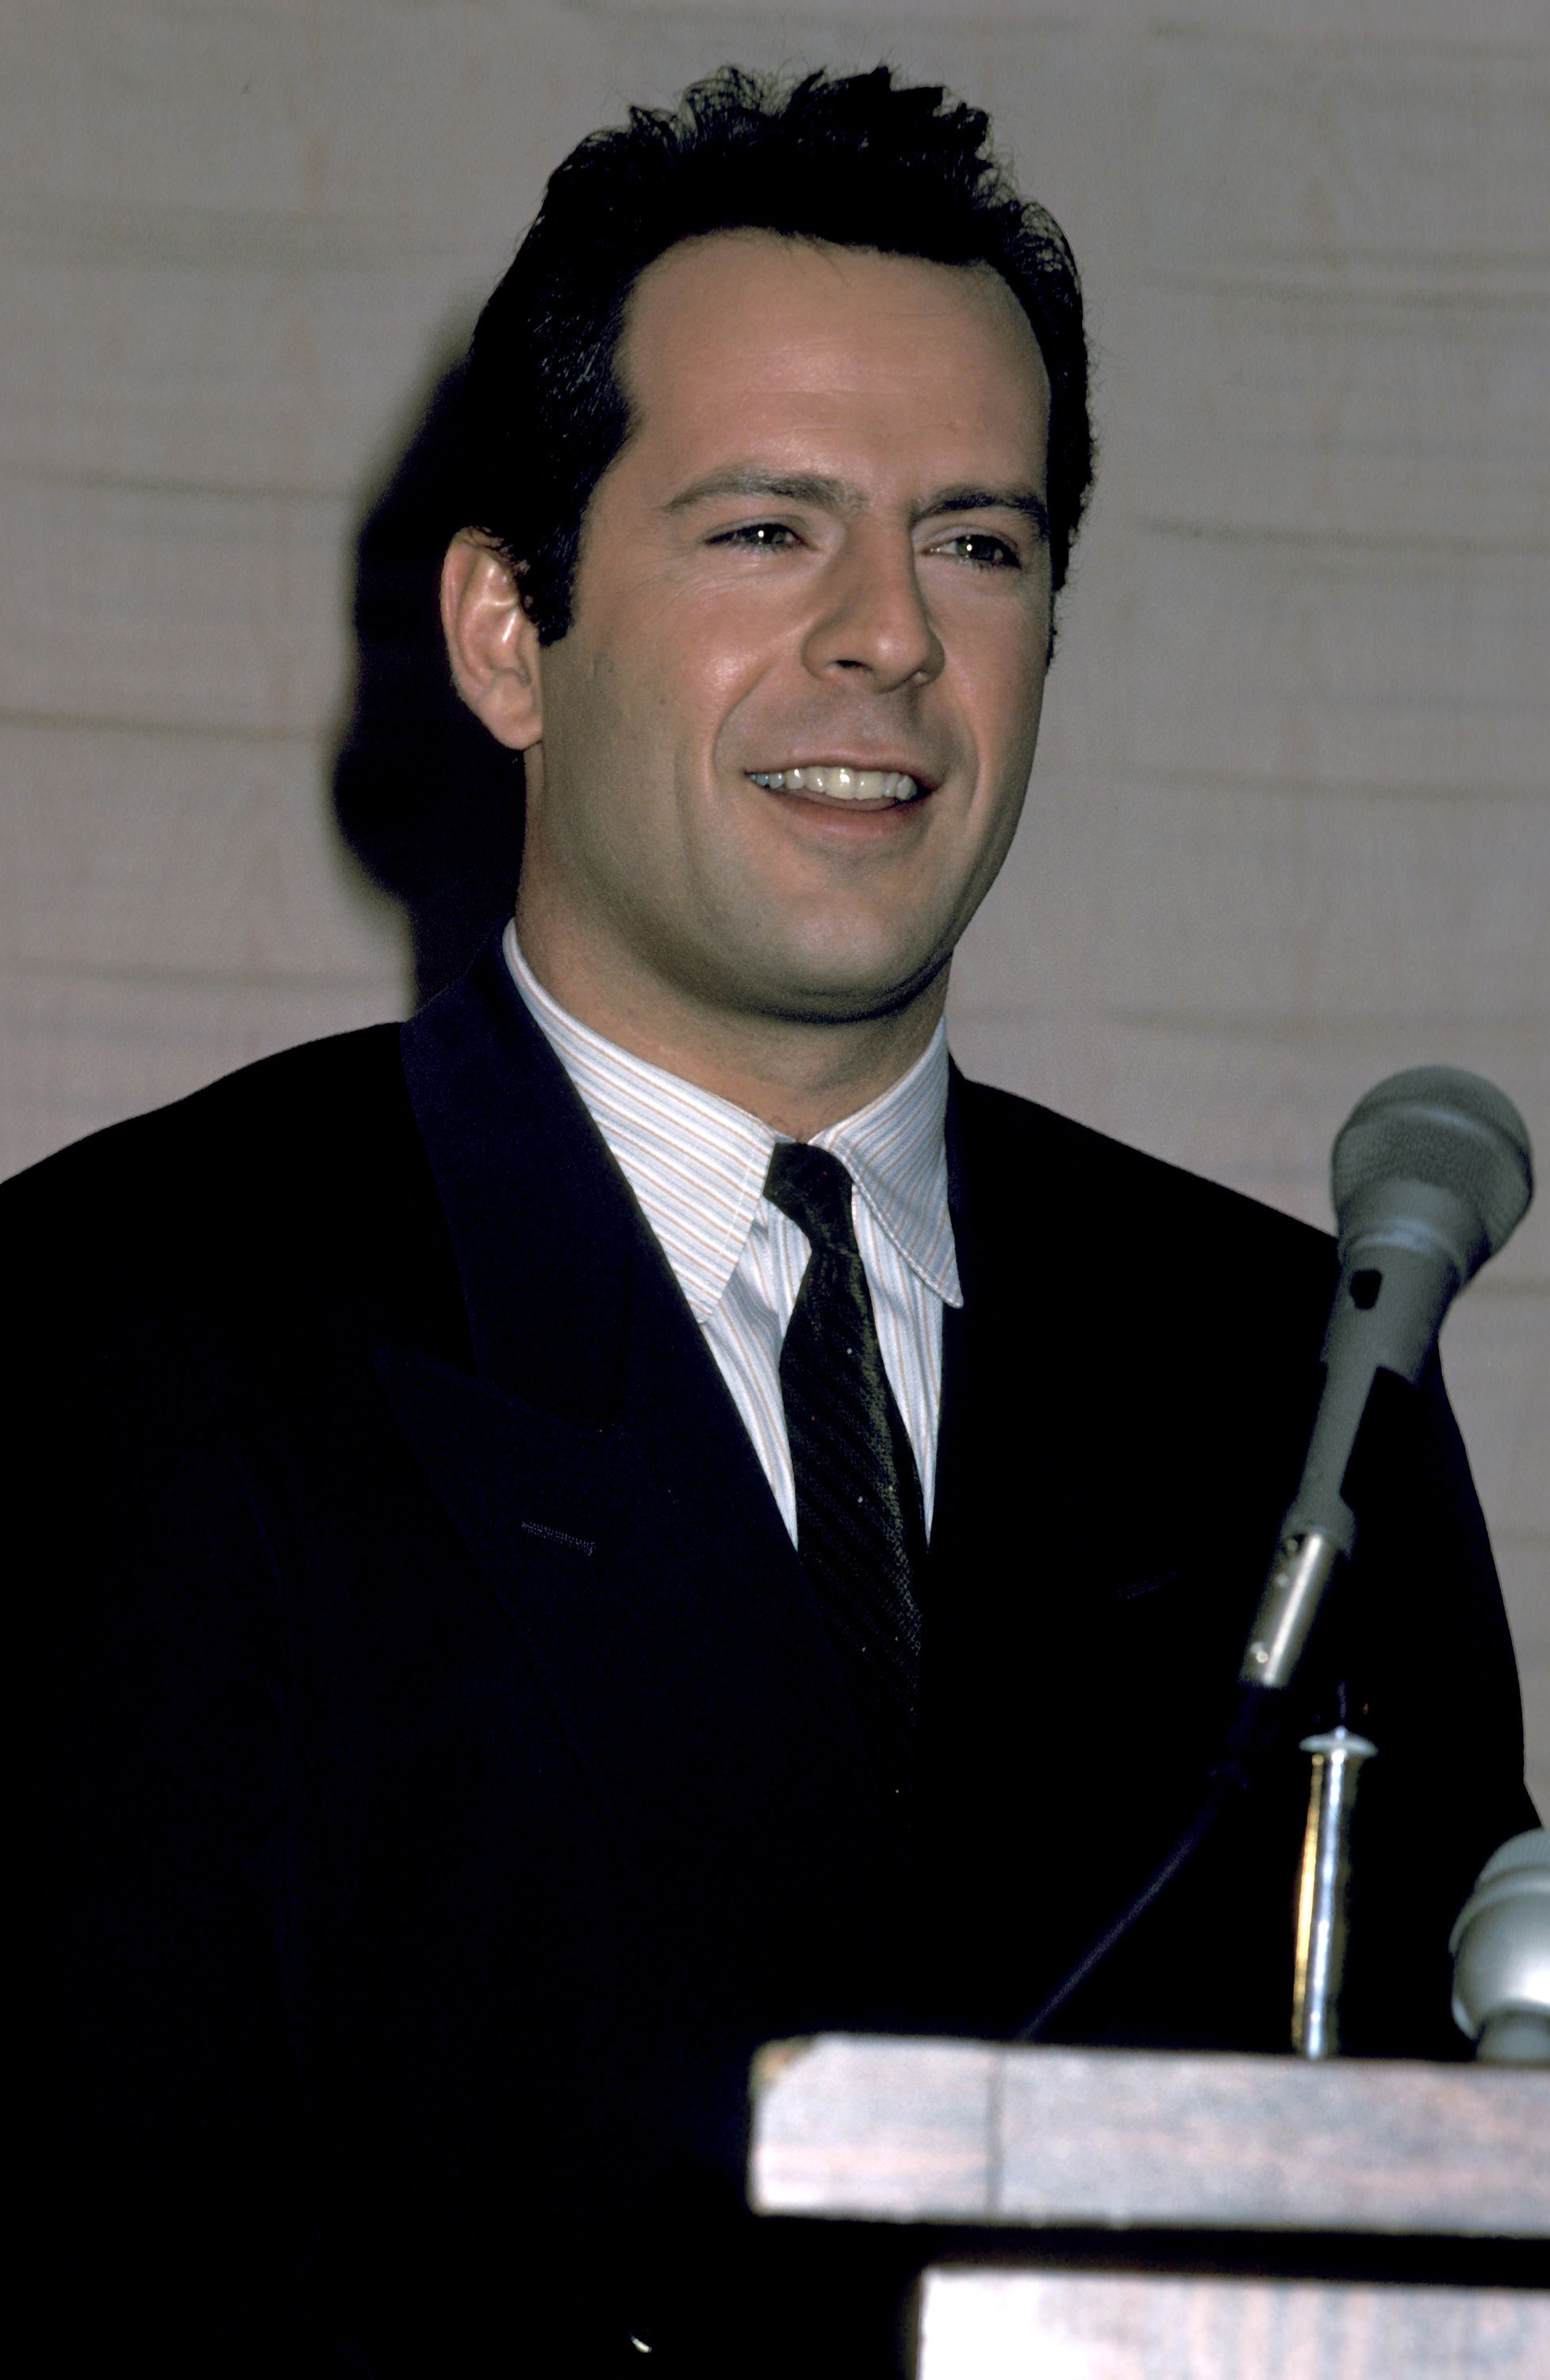 Bruce Willis at 31 But it was his lead role in the '80s classic Die Hard that catapulted him to superstardom.